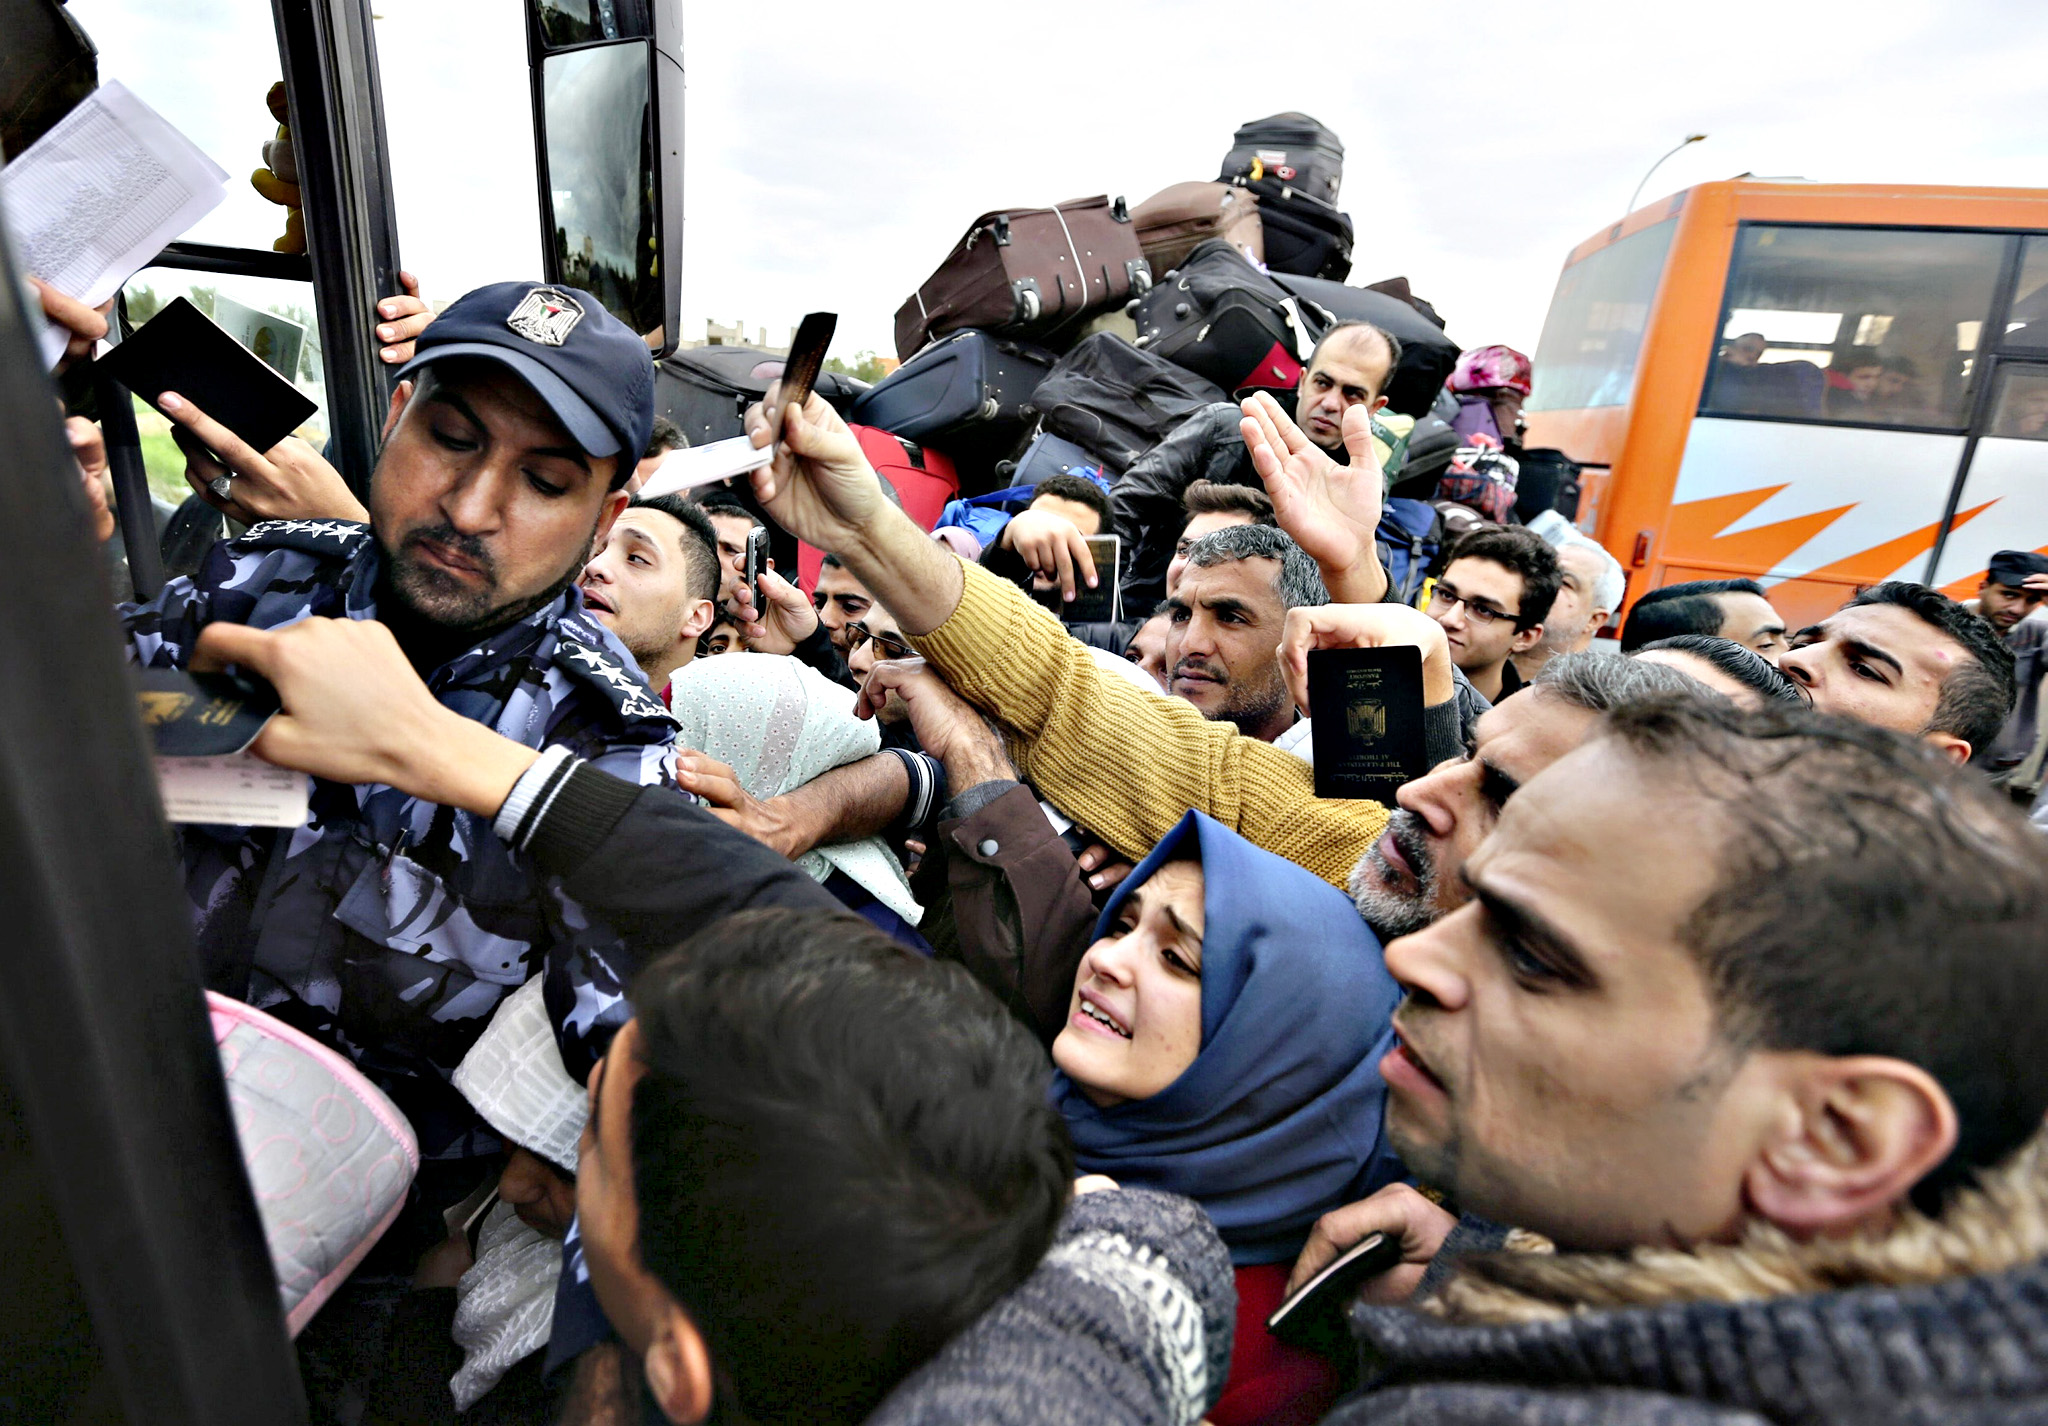 Palestinians try to get in a bus to cross into Egypt at the Rafah border crossing between Egypt and the southern Gaza Strip December 4, 2015. Egypt opened the Rafah border crossing on Thursday for two days to allow Palestinians on humanitarian grounds to travel in and out of the Gaza Strip, officials said.